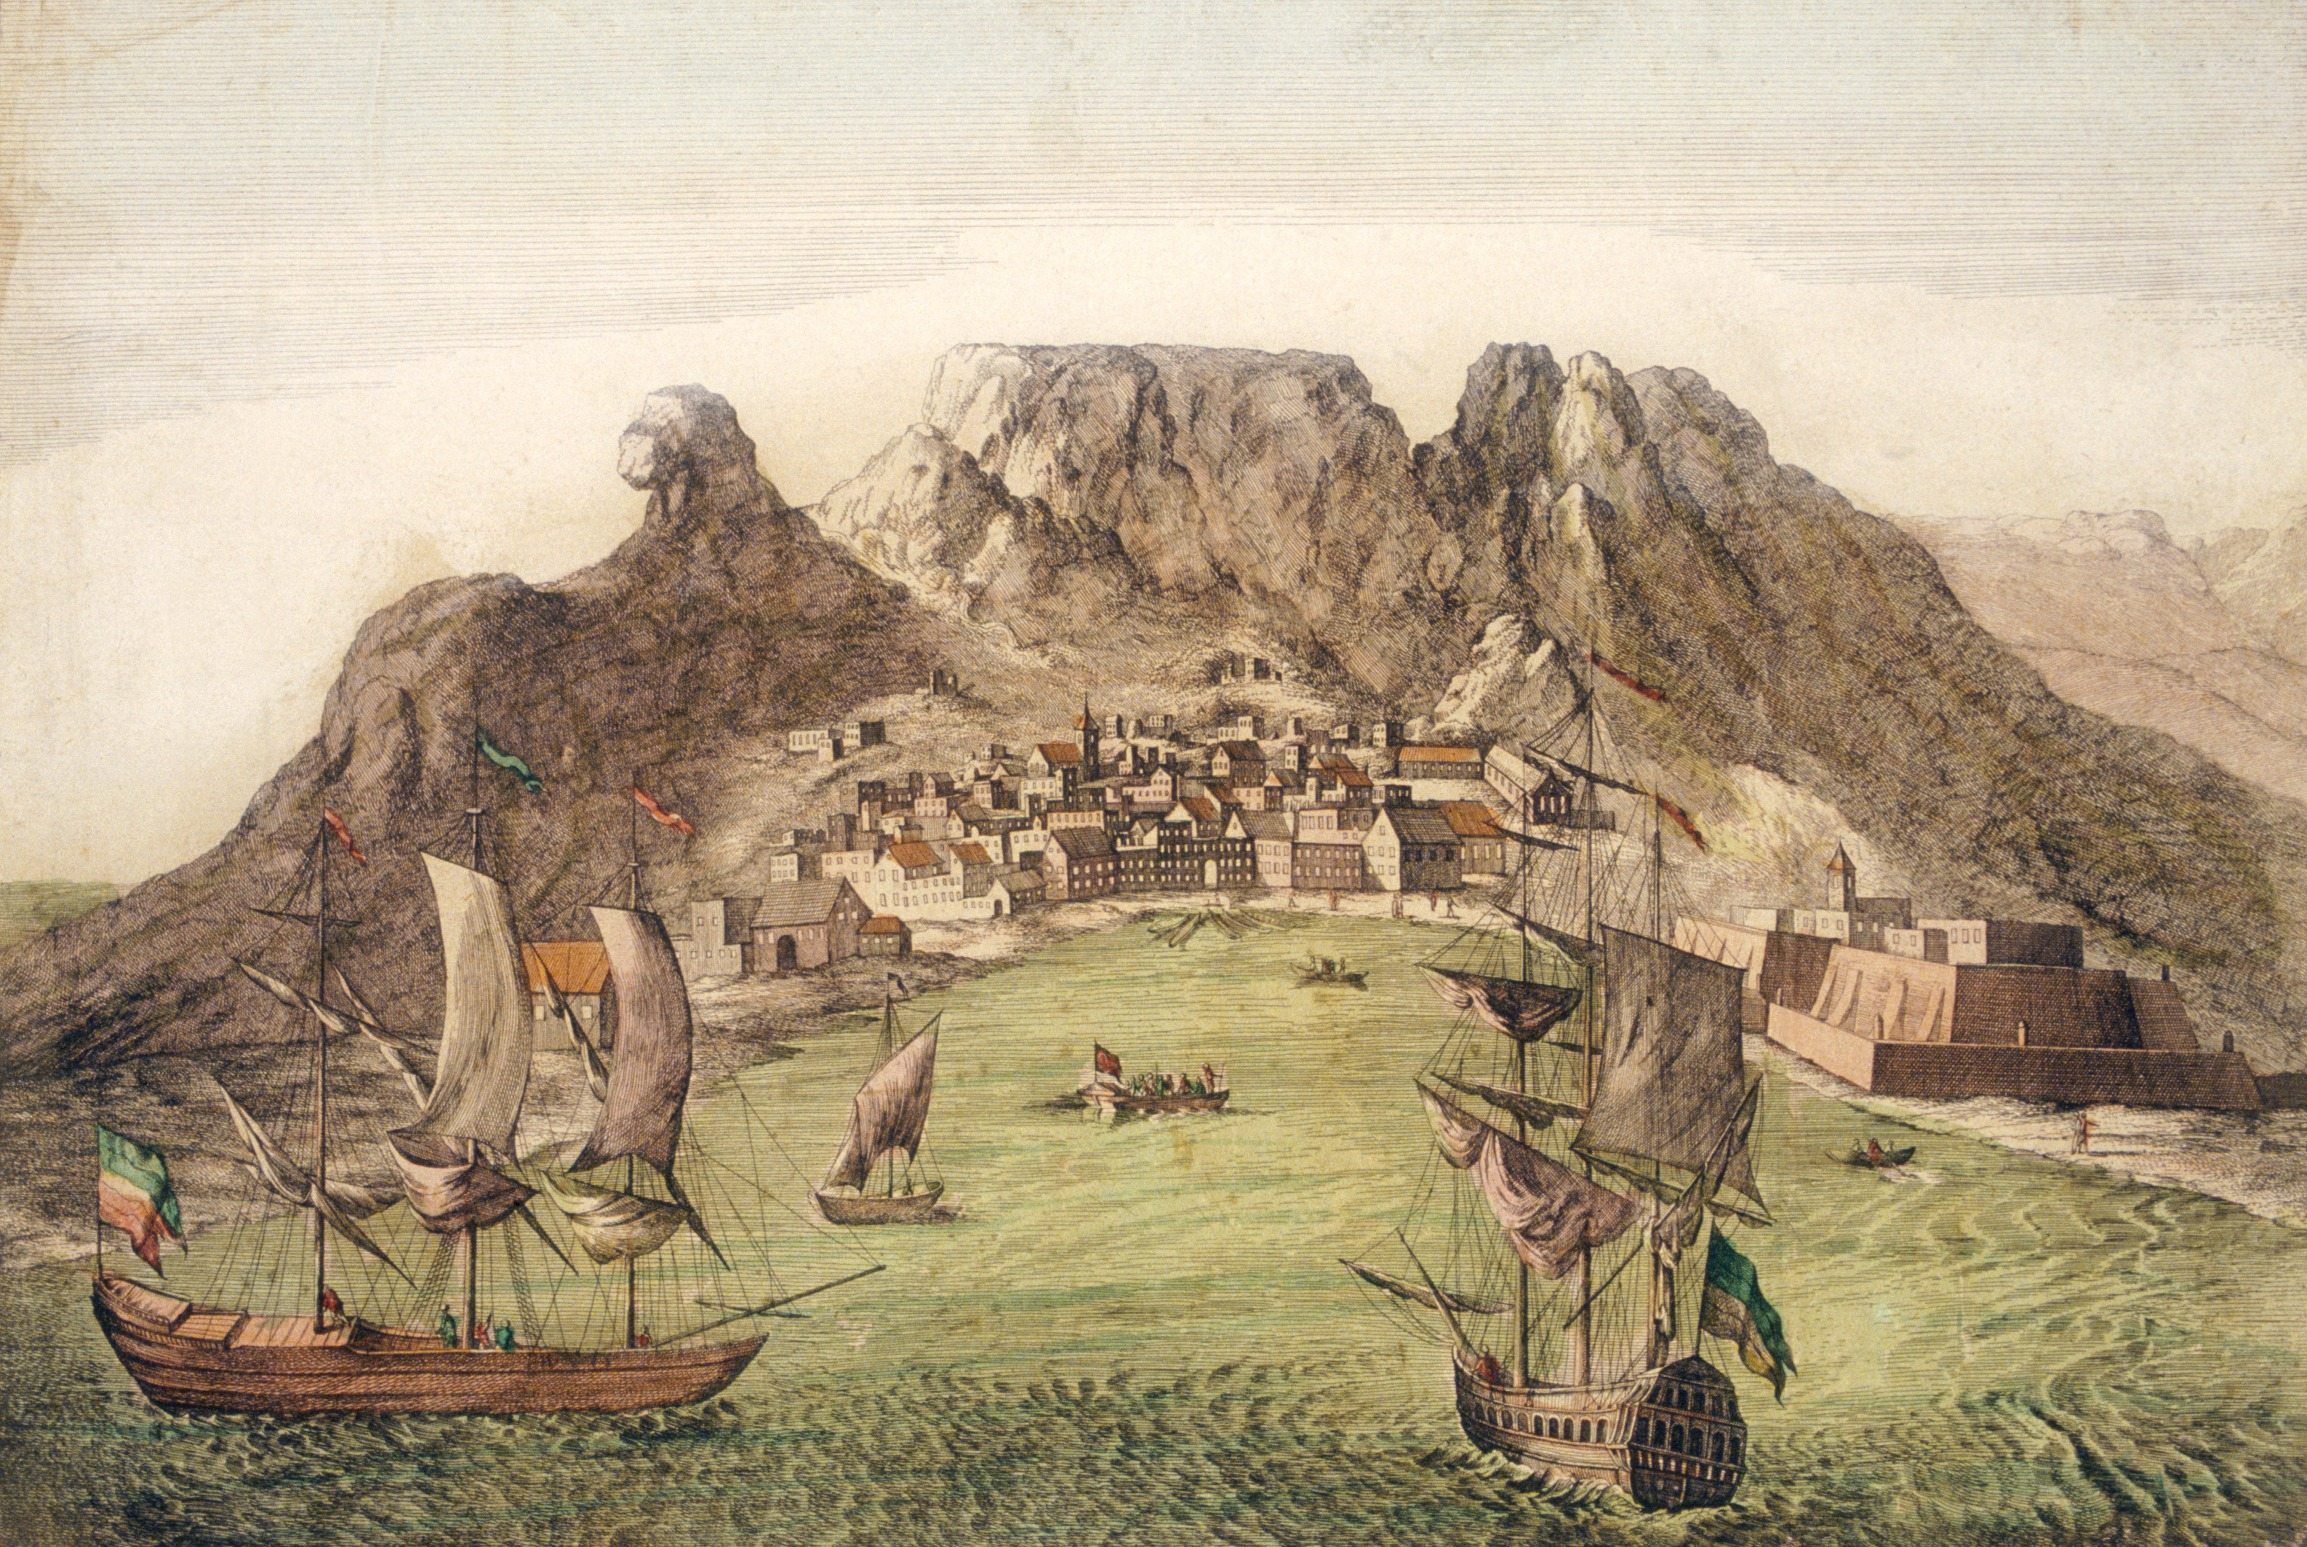 Table Bay by Aernout Smit (1683) within the William Fehr Collection, Iziko Museums of South Africa Social History Collections.